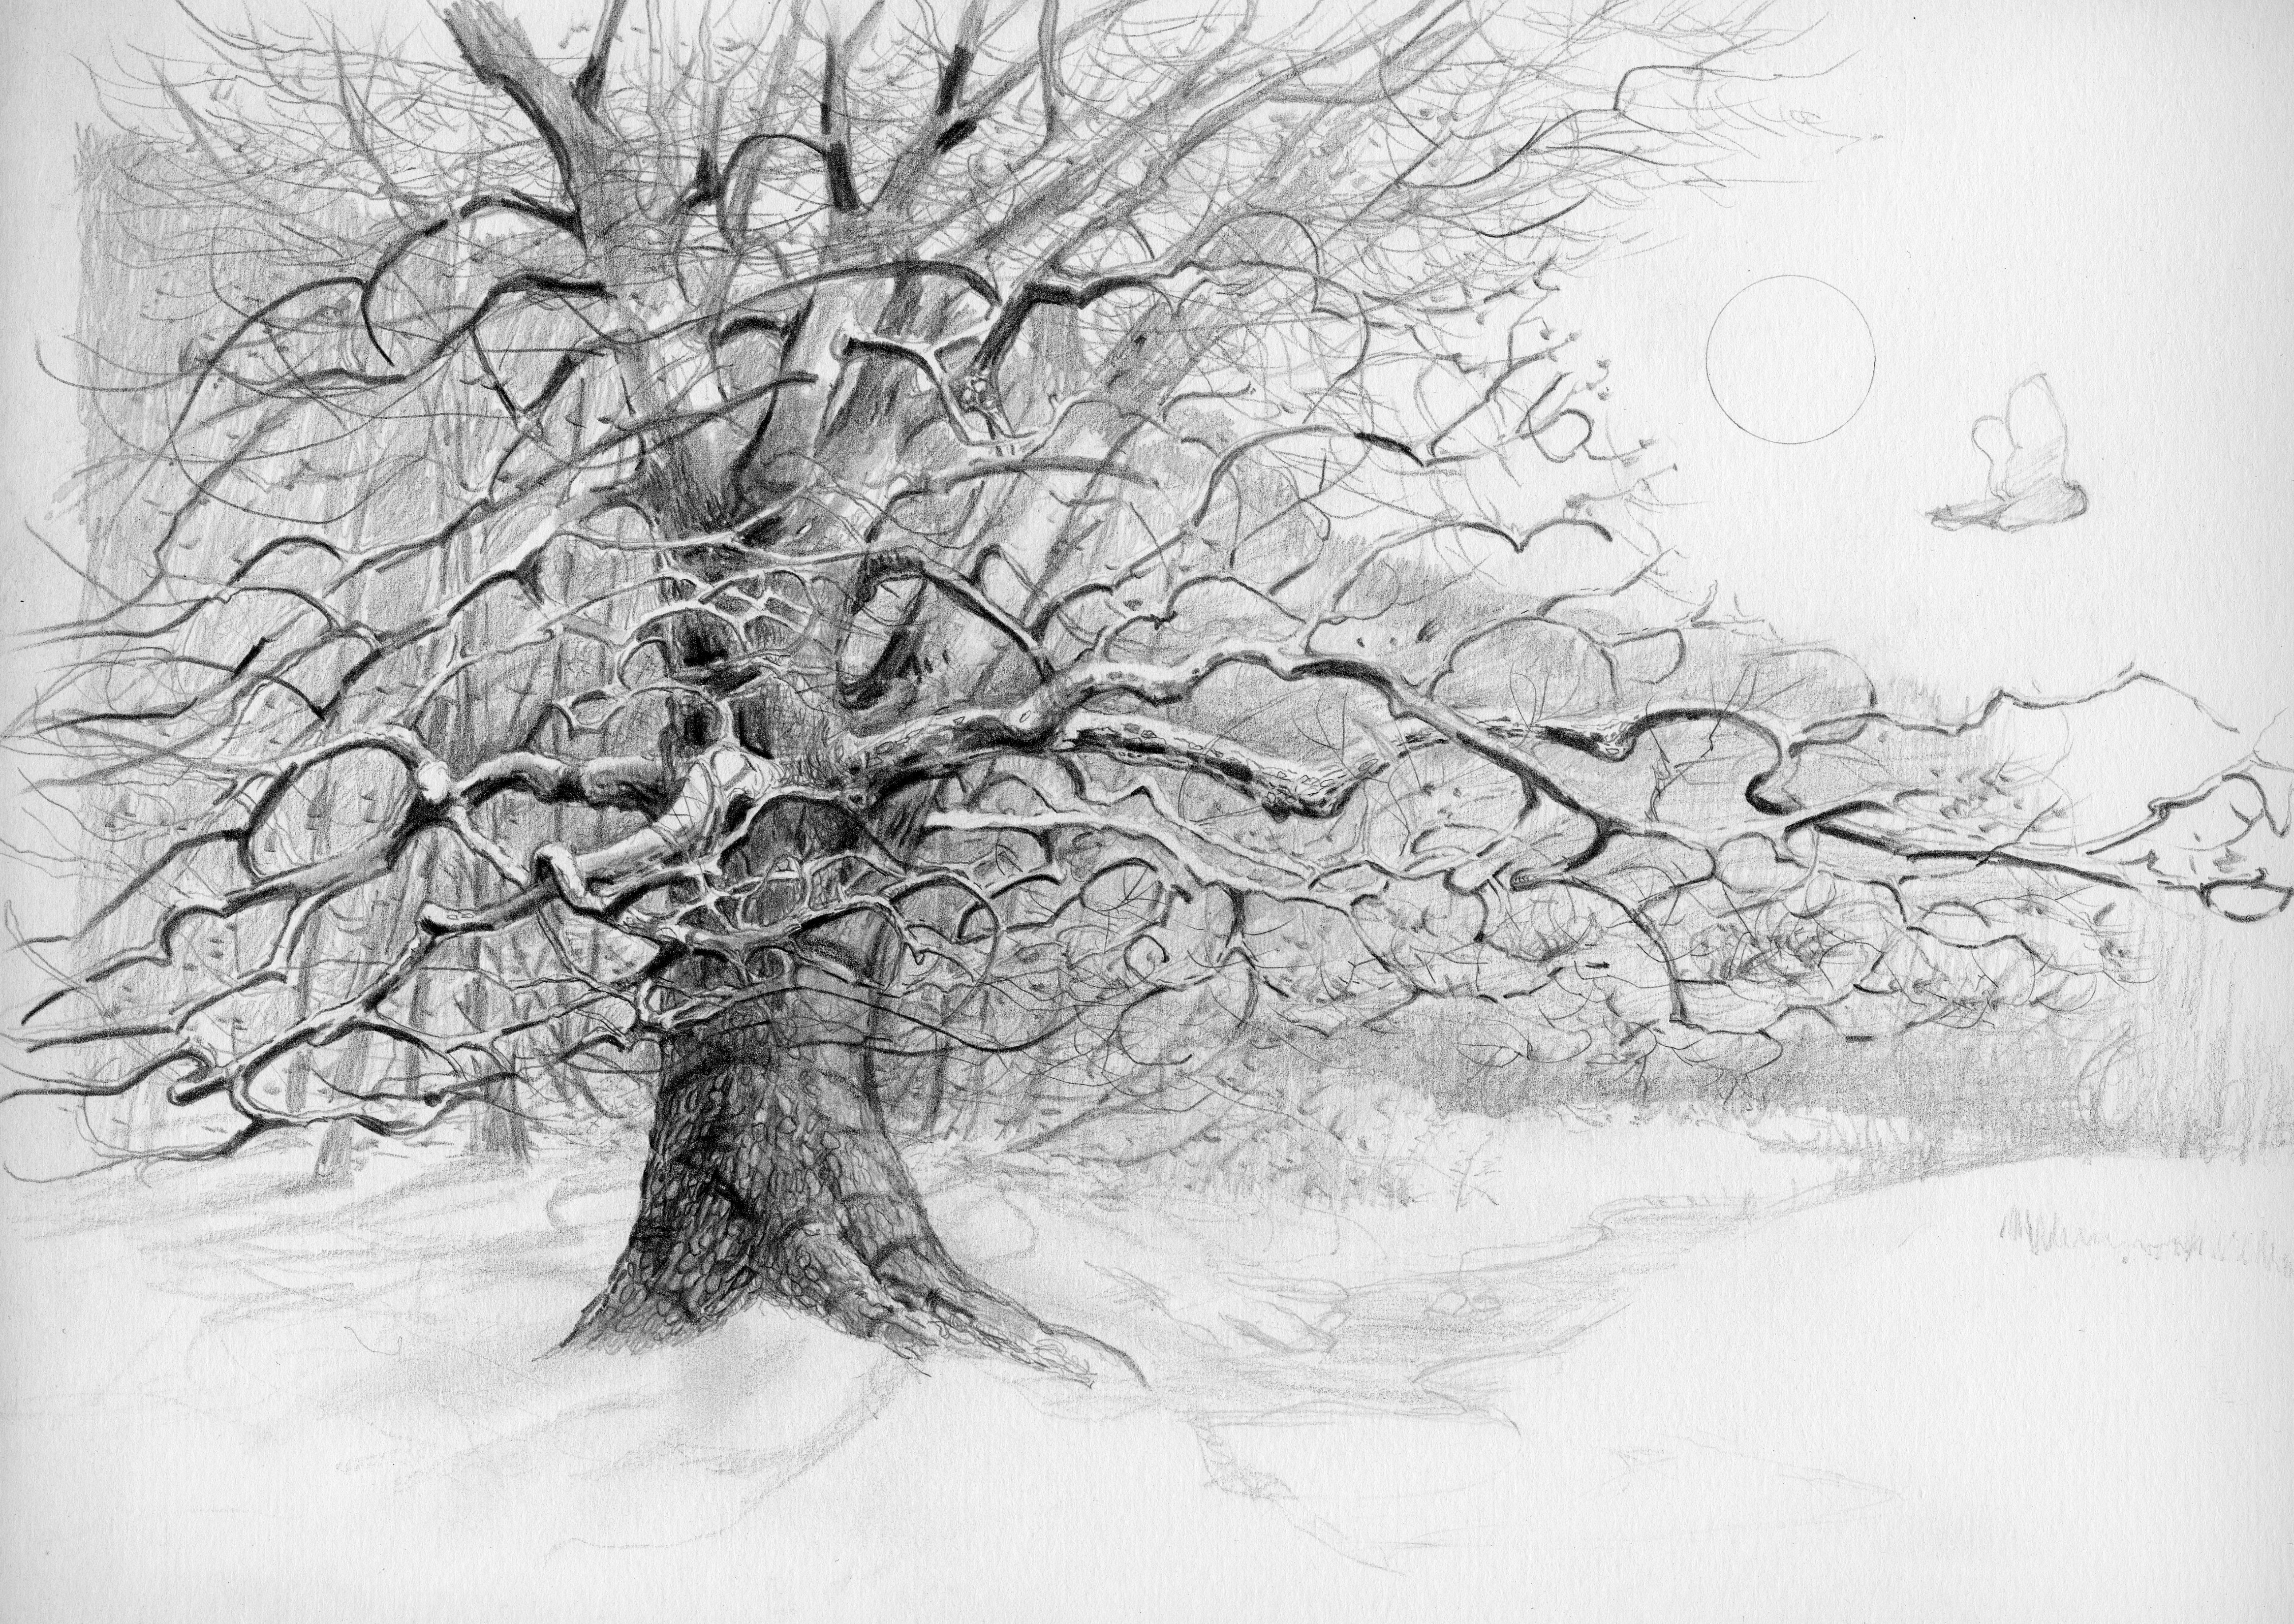 Trees Pencil Sketches This Graphite Pencil Drawings By Diane Wright Of A Winter Tree Is photo, Trees Pencil Sketches This Graphite Pencil Drawings By Diane Wright Of A Winter Tree Is image, Trees Pencil Sketches This Graphite Pencil Drawings By Diane Wright Of A Winter Tree Is gallery